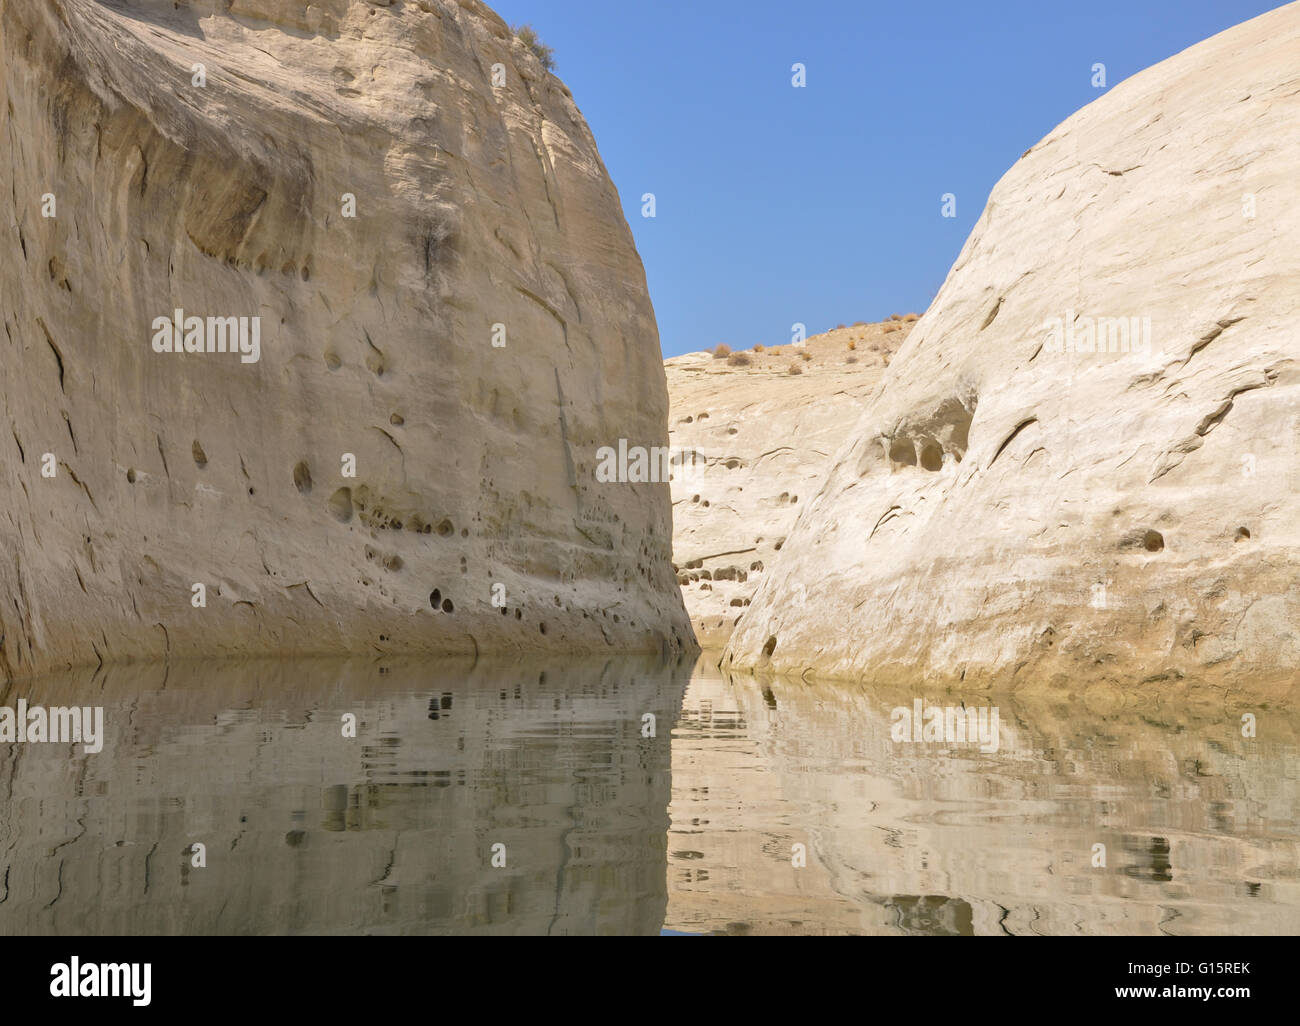 three different planes of natural rock that has water erosion - Stock Image